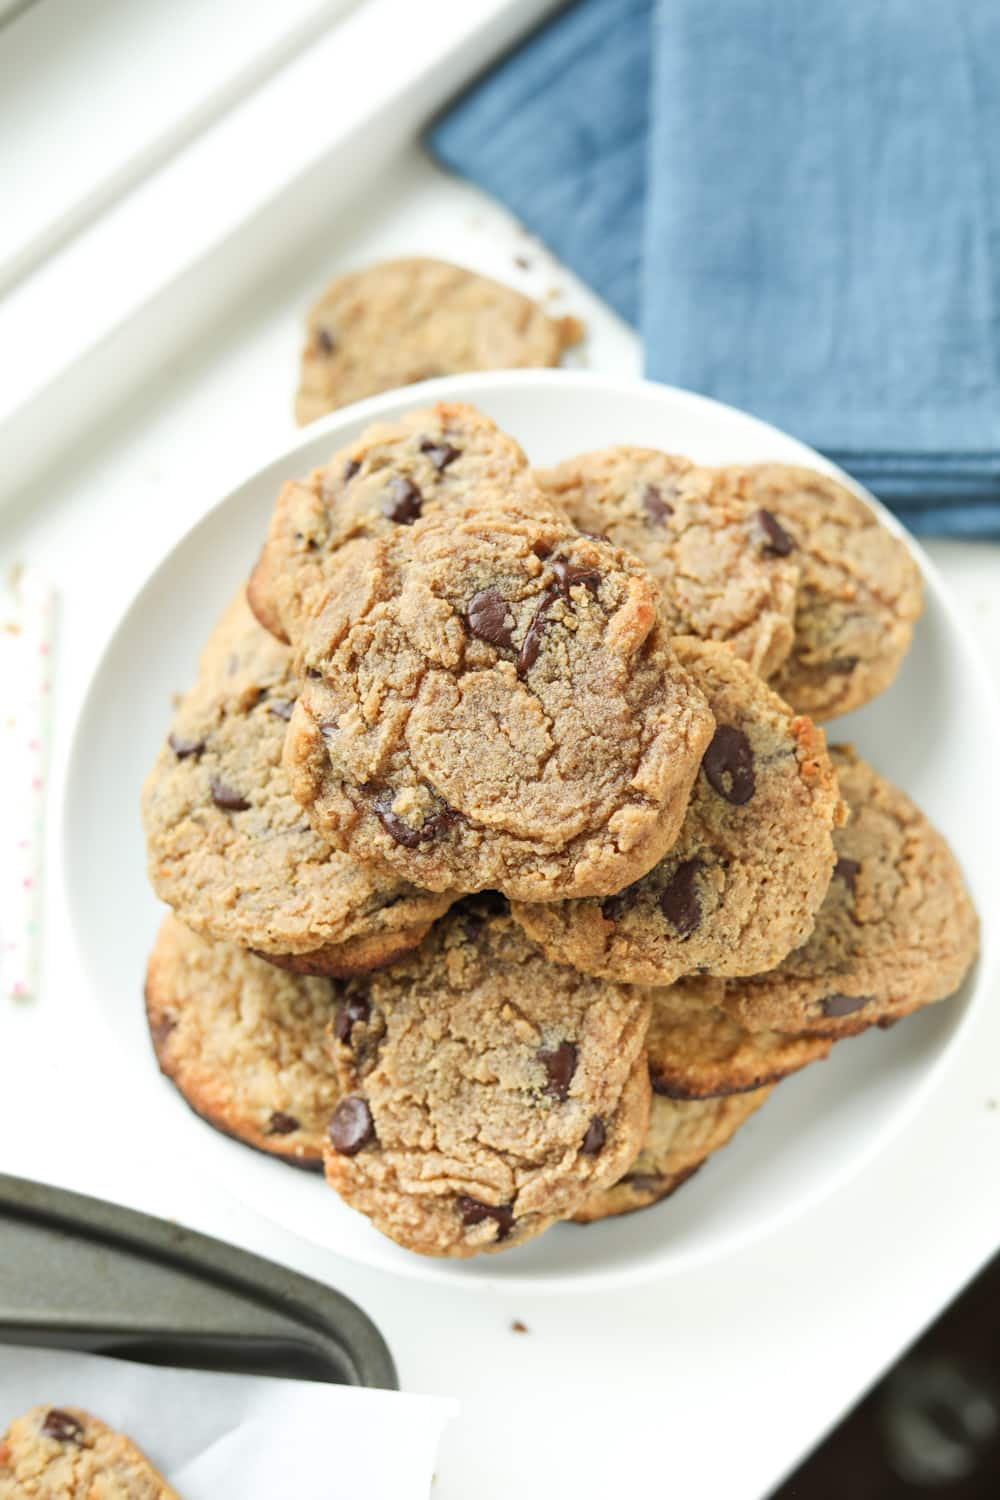 Chocolate chip cookies staked on top of each other on a white plate, next to a blue napkin.